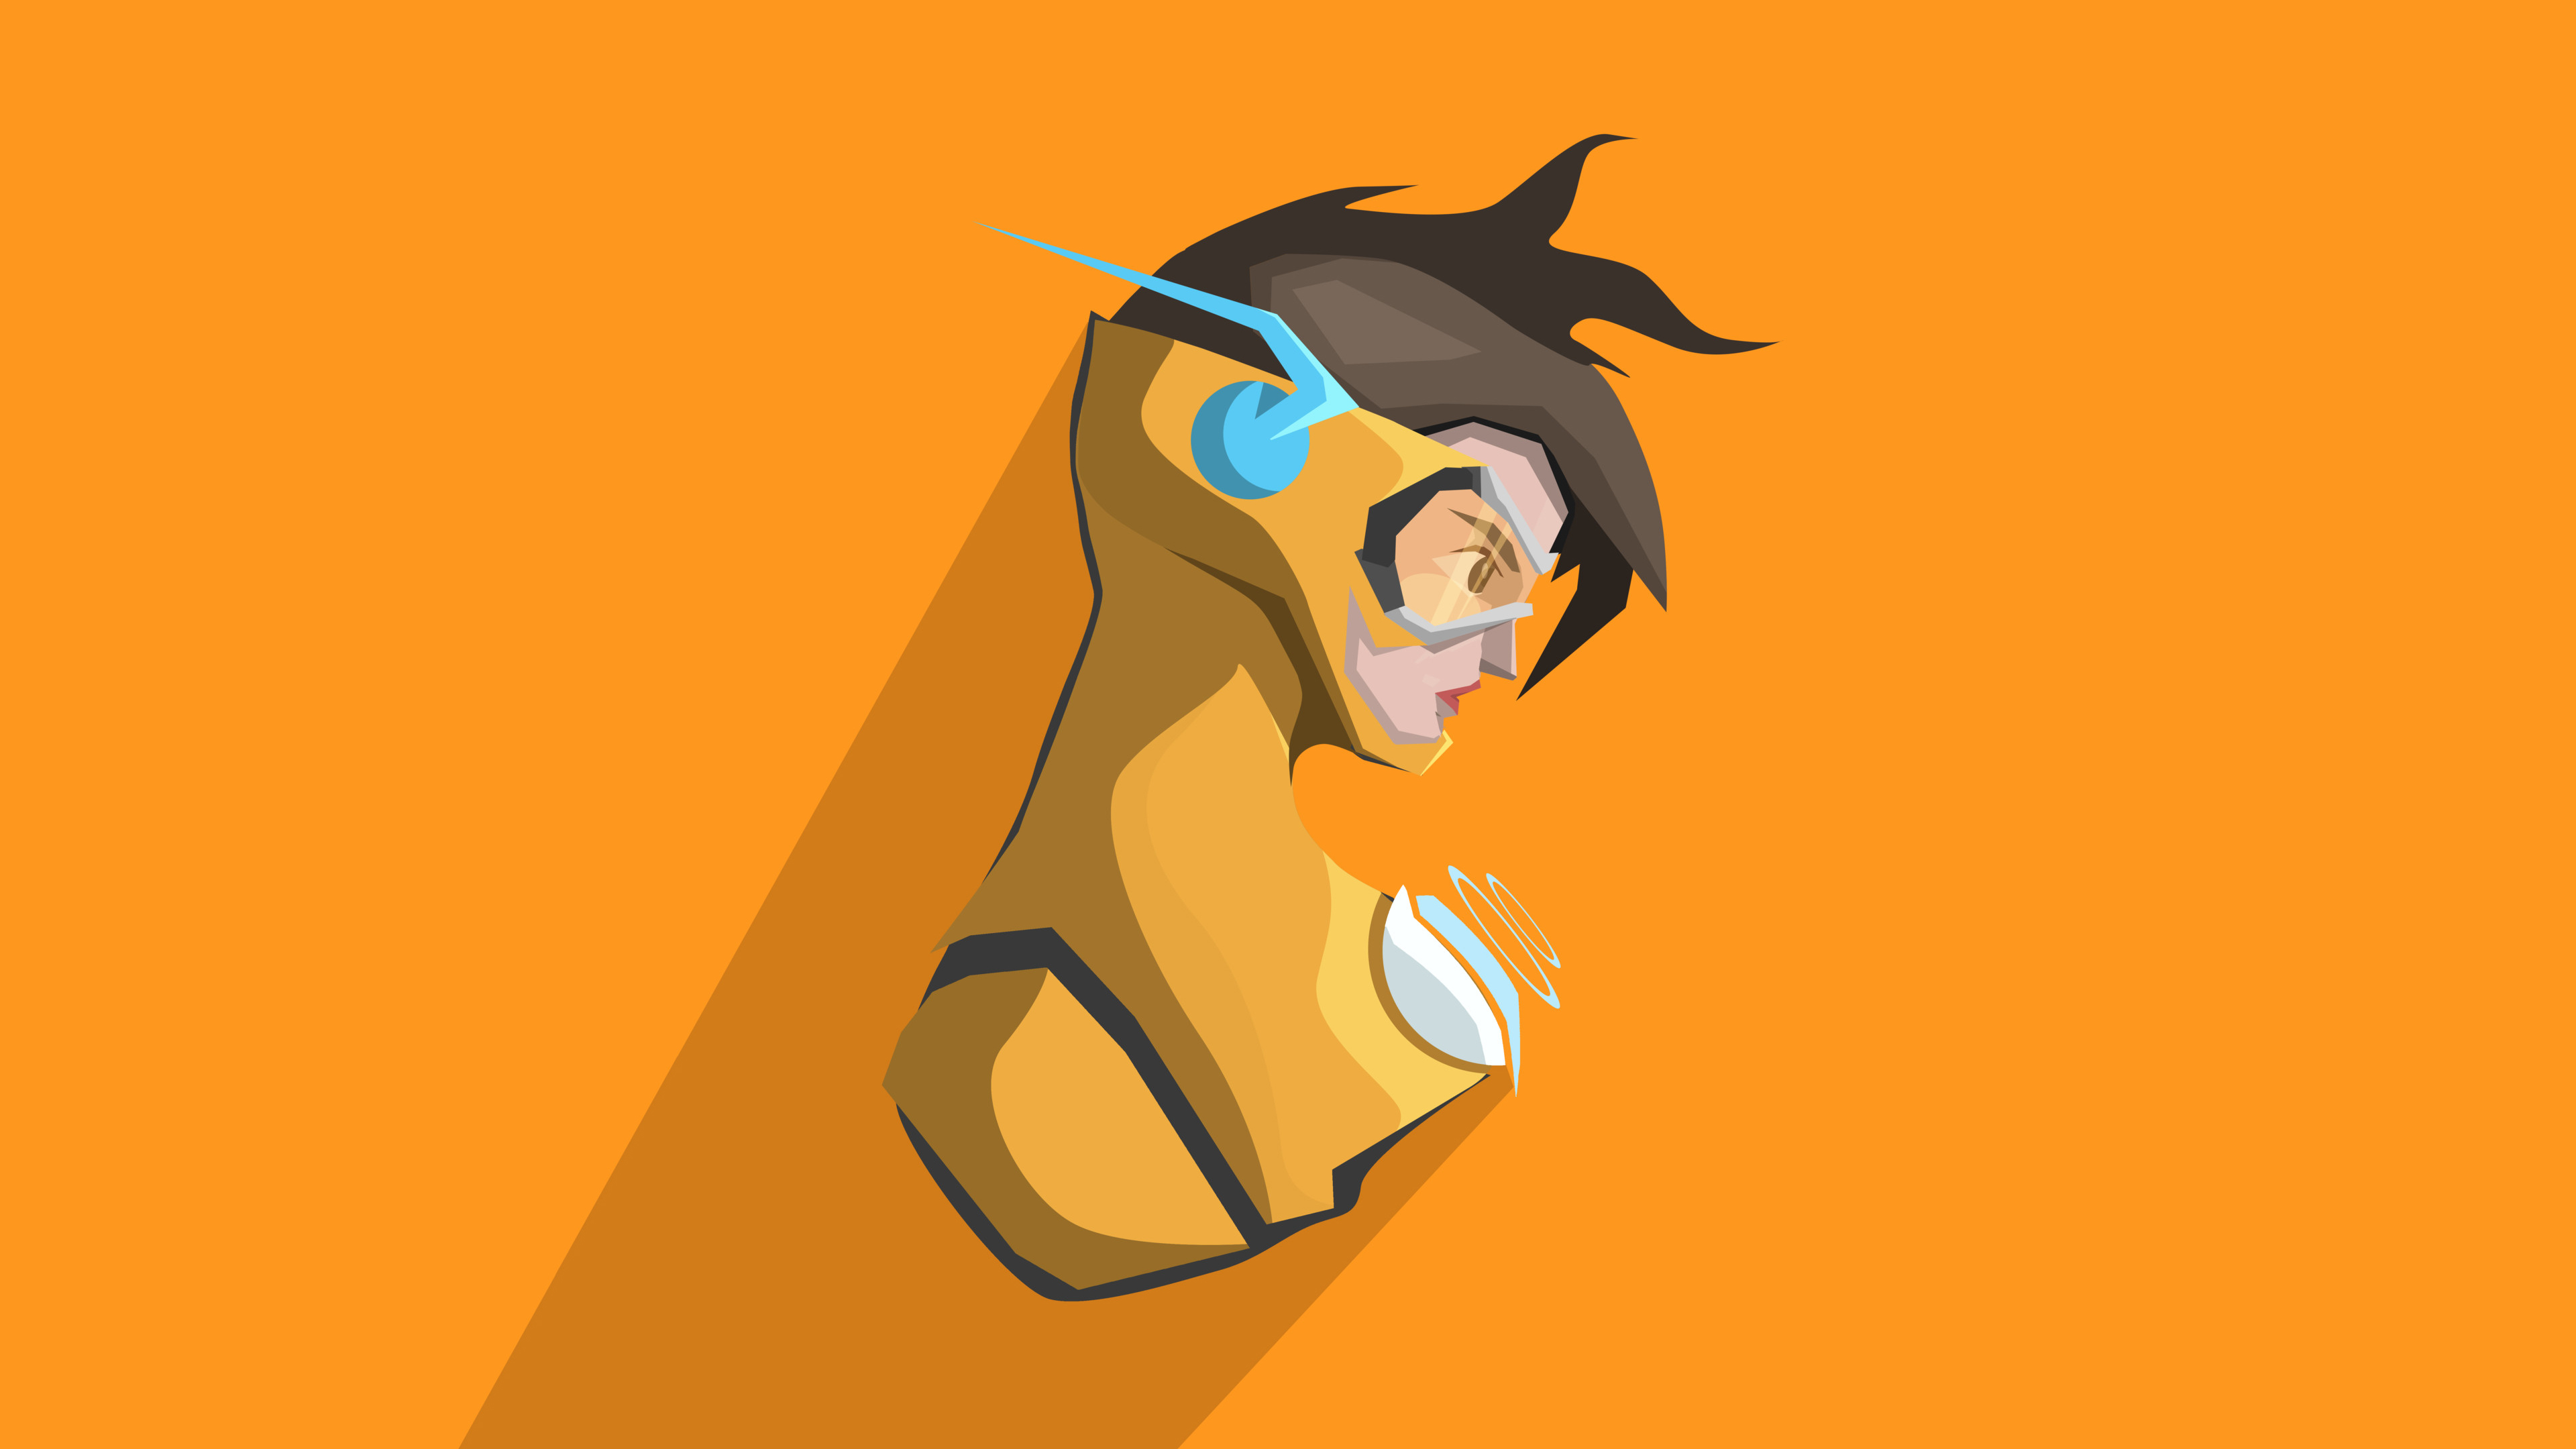 Overwatch Minimalist Wallpaper Phone Labzada Wallpaper